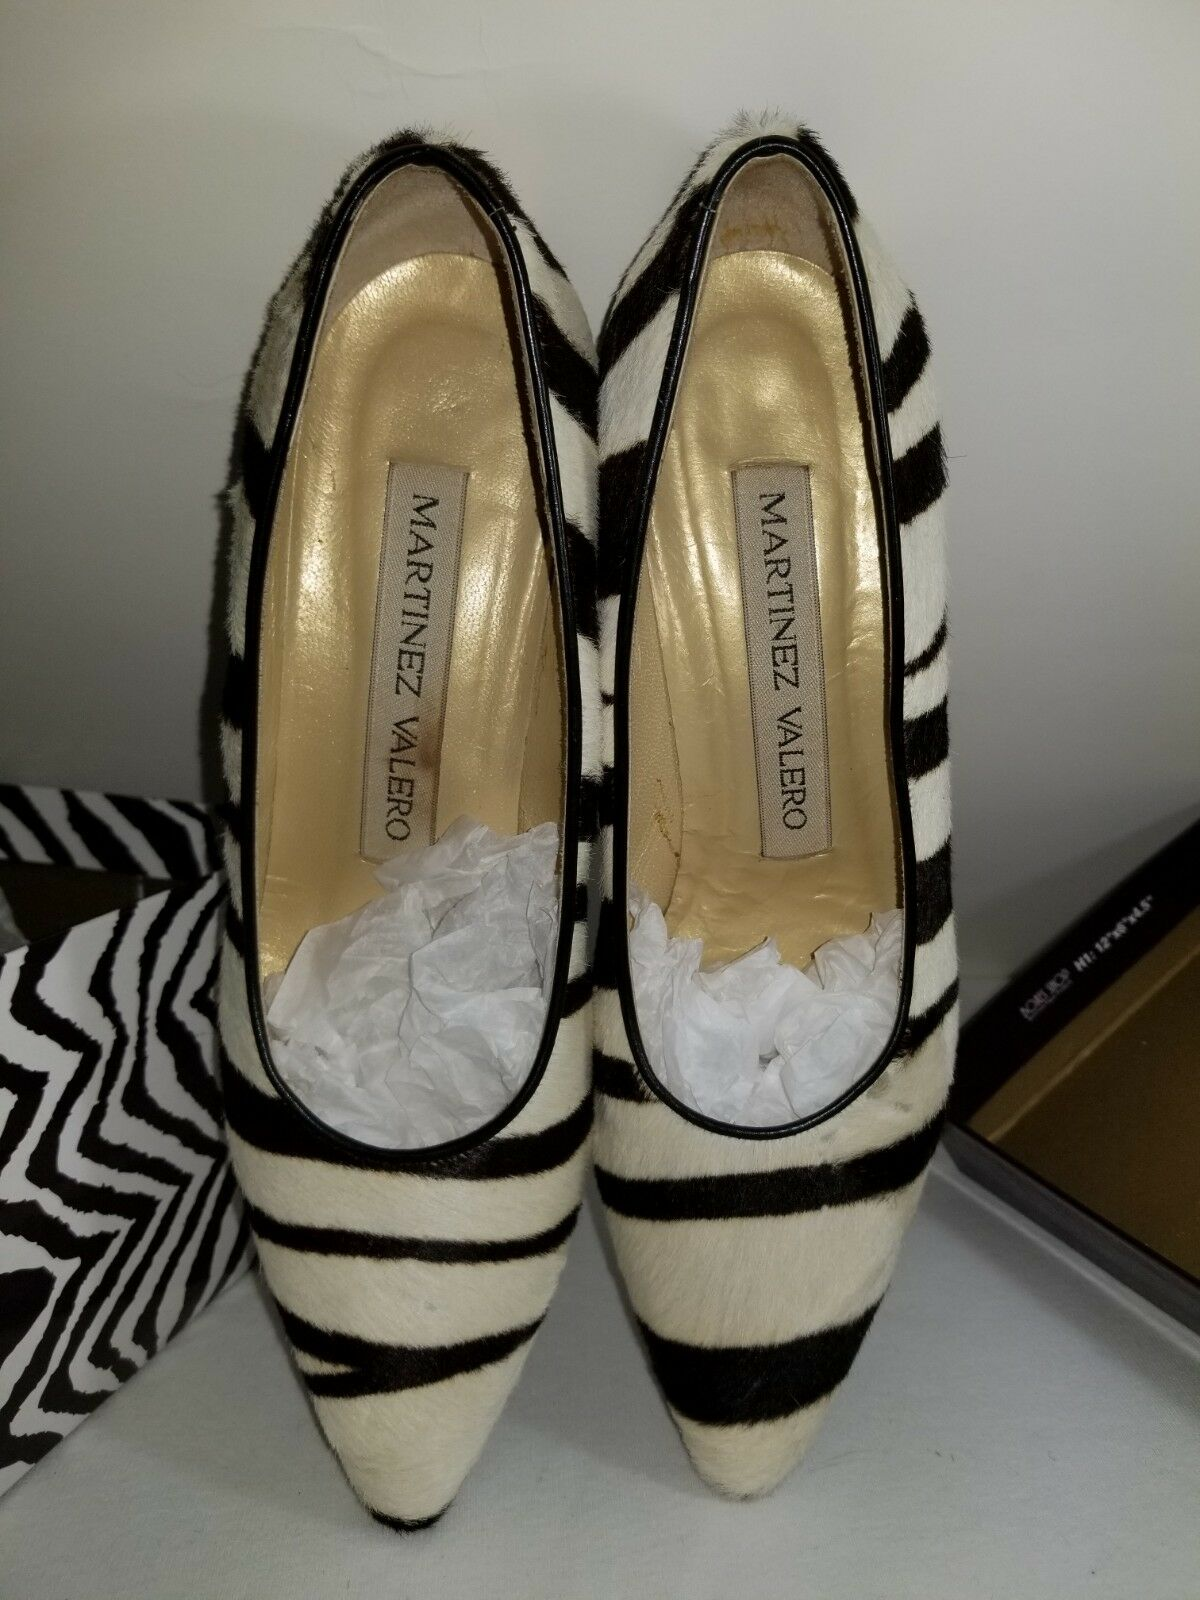 Vintage Martinez Valero shoes Pumps Leather Zebra Pattern and and and Fur 5e29d9